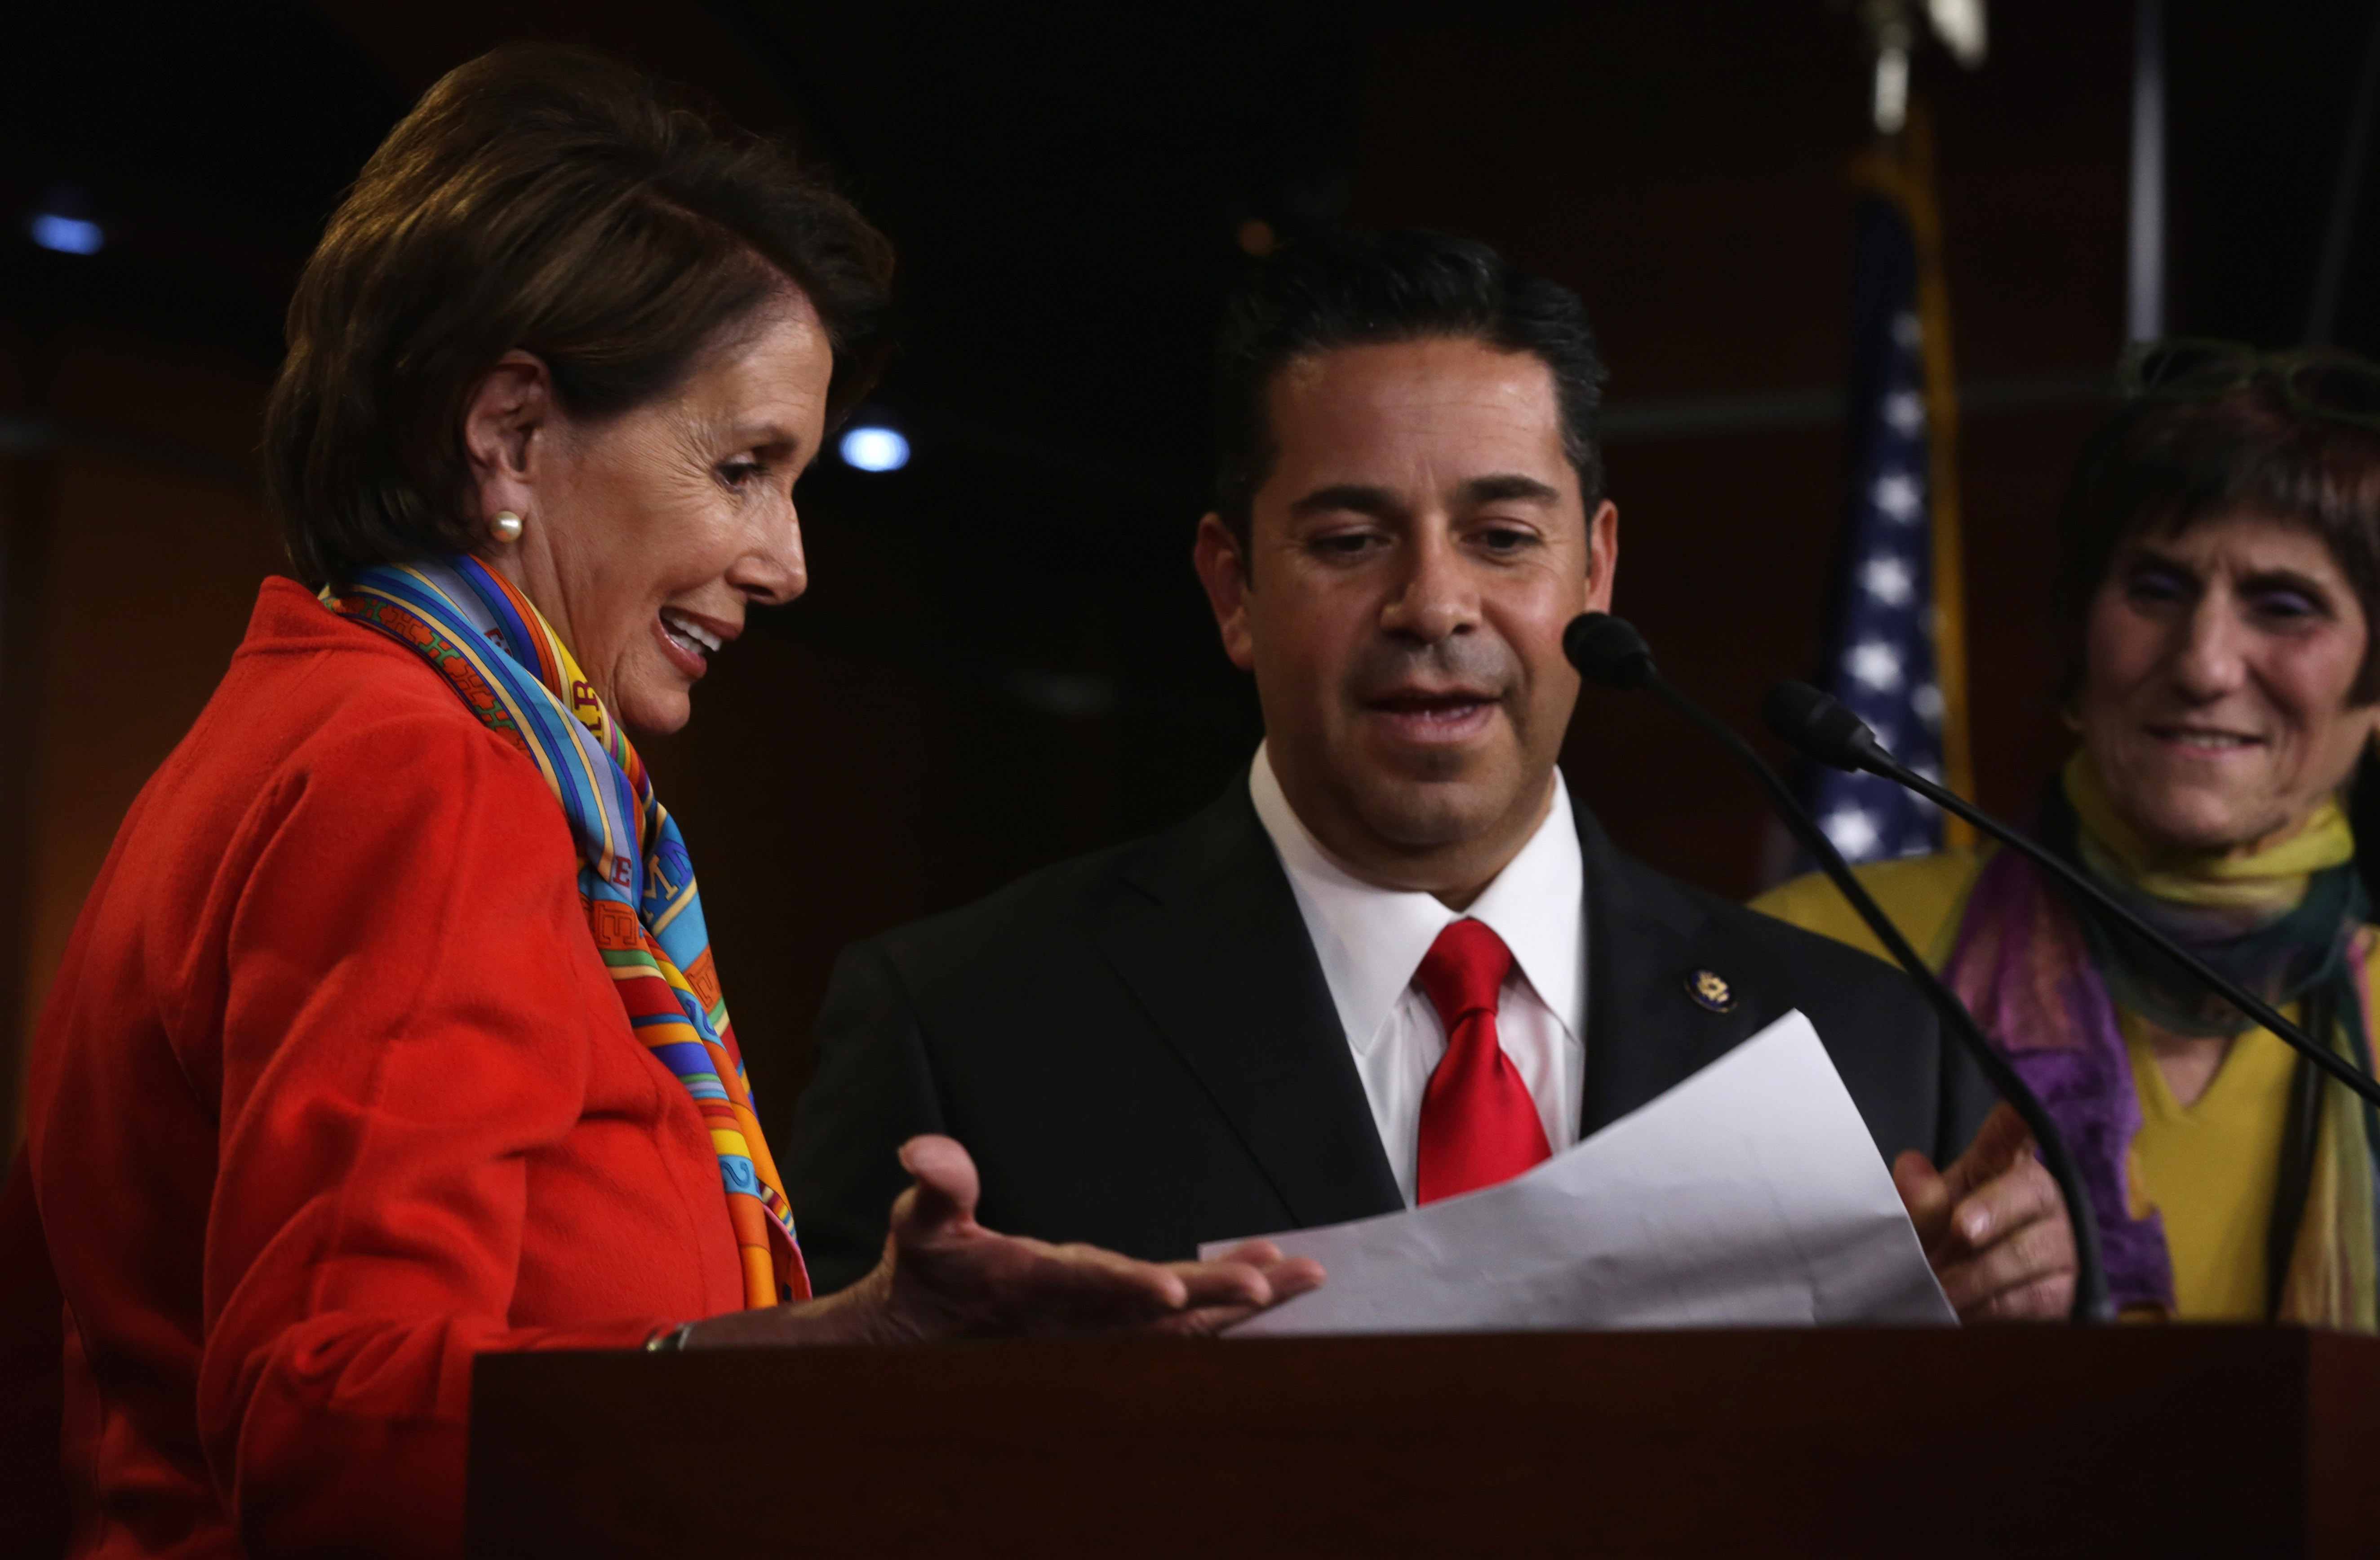 U.S. House Minority Leader Rep. Nancy Pelosi (D-CA) (L) yields to Rep. Ben Ray Luján (D-NM) during a news conference to announce new members of the House Democratic leadership team. (Photo by Alex Wong/Getty Images)